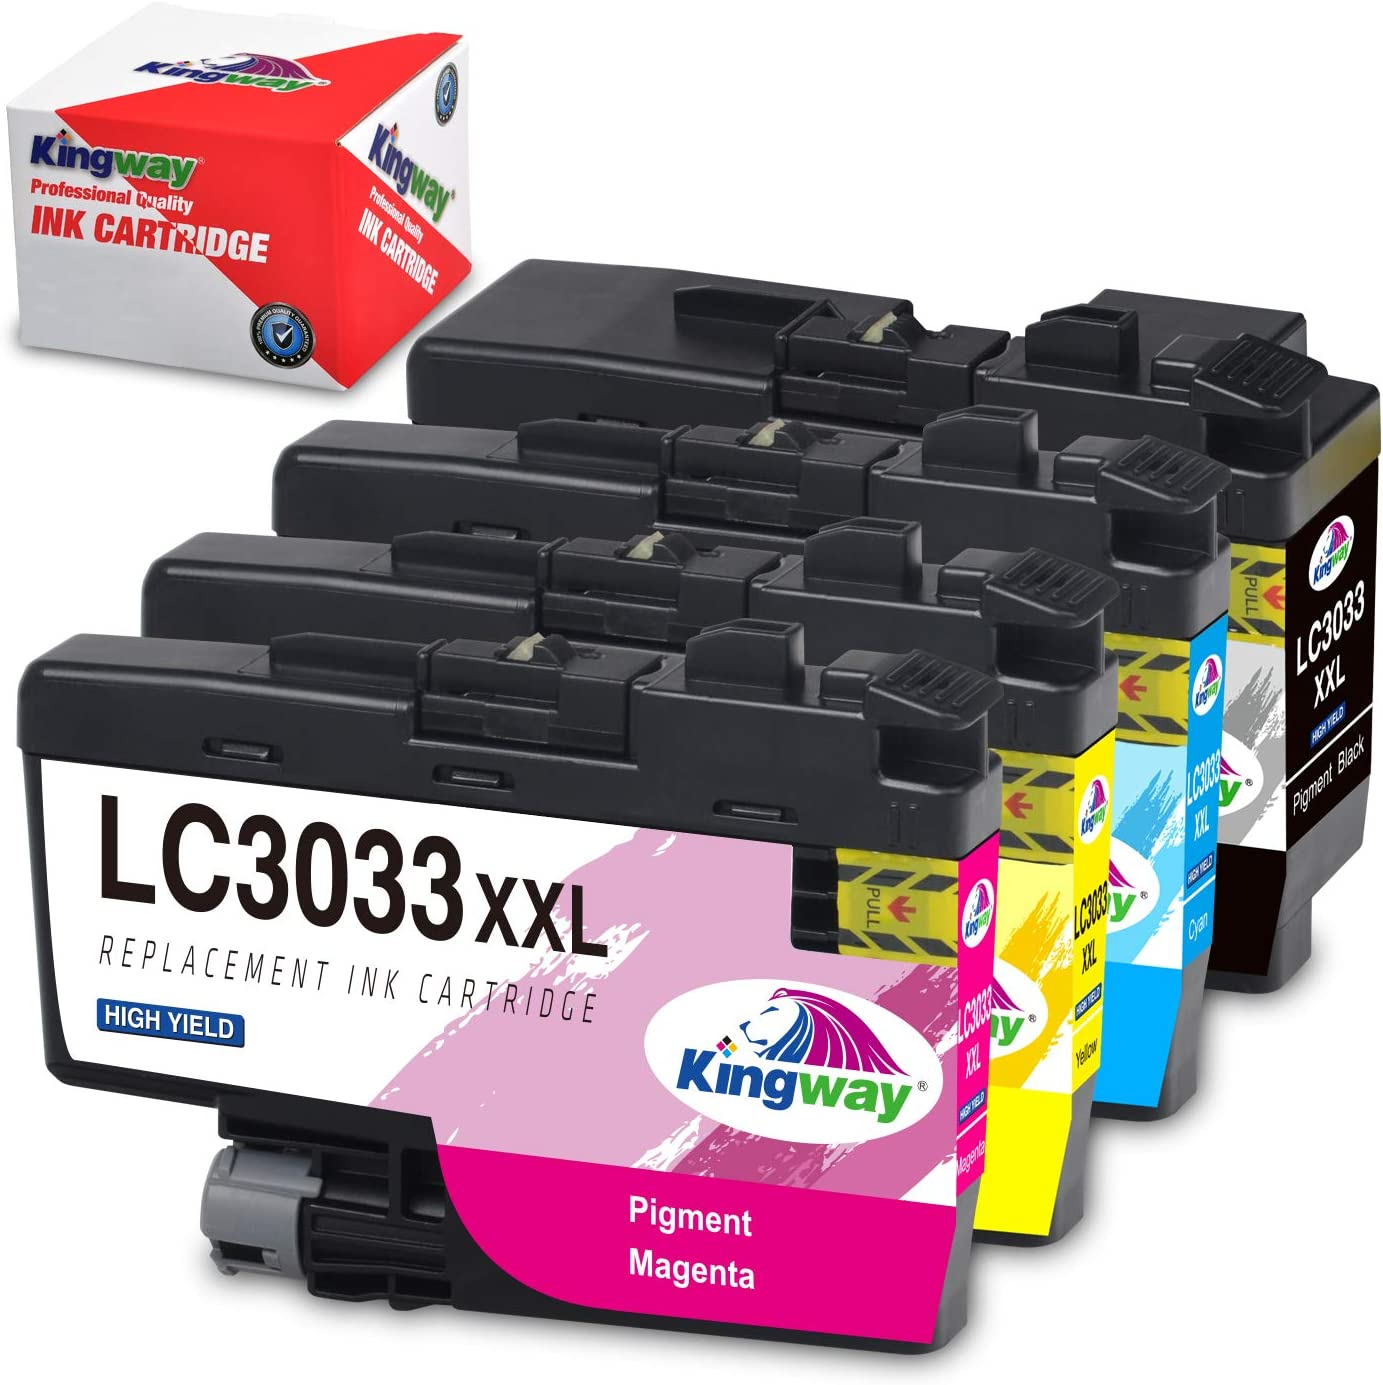 Kingway Upgraded LC3033XXL LC3033 LC3035 Compatible Ink Cartridges Replacement for Brother MFC-J995DW MFC-J995DWXL MFC-J815DW, MFC-J805DW, MFC-J805DWXL Printer (Black, Cyan, Magenta, Yellow, 4-Pack)